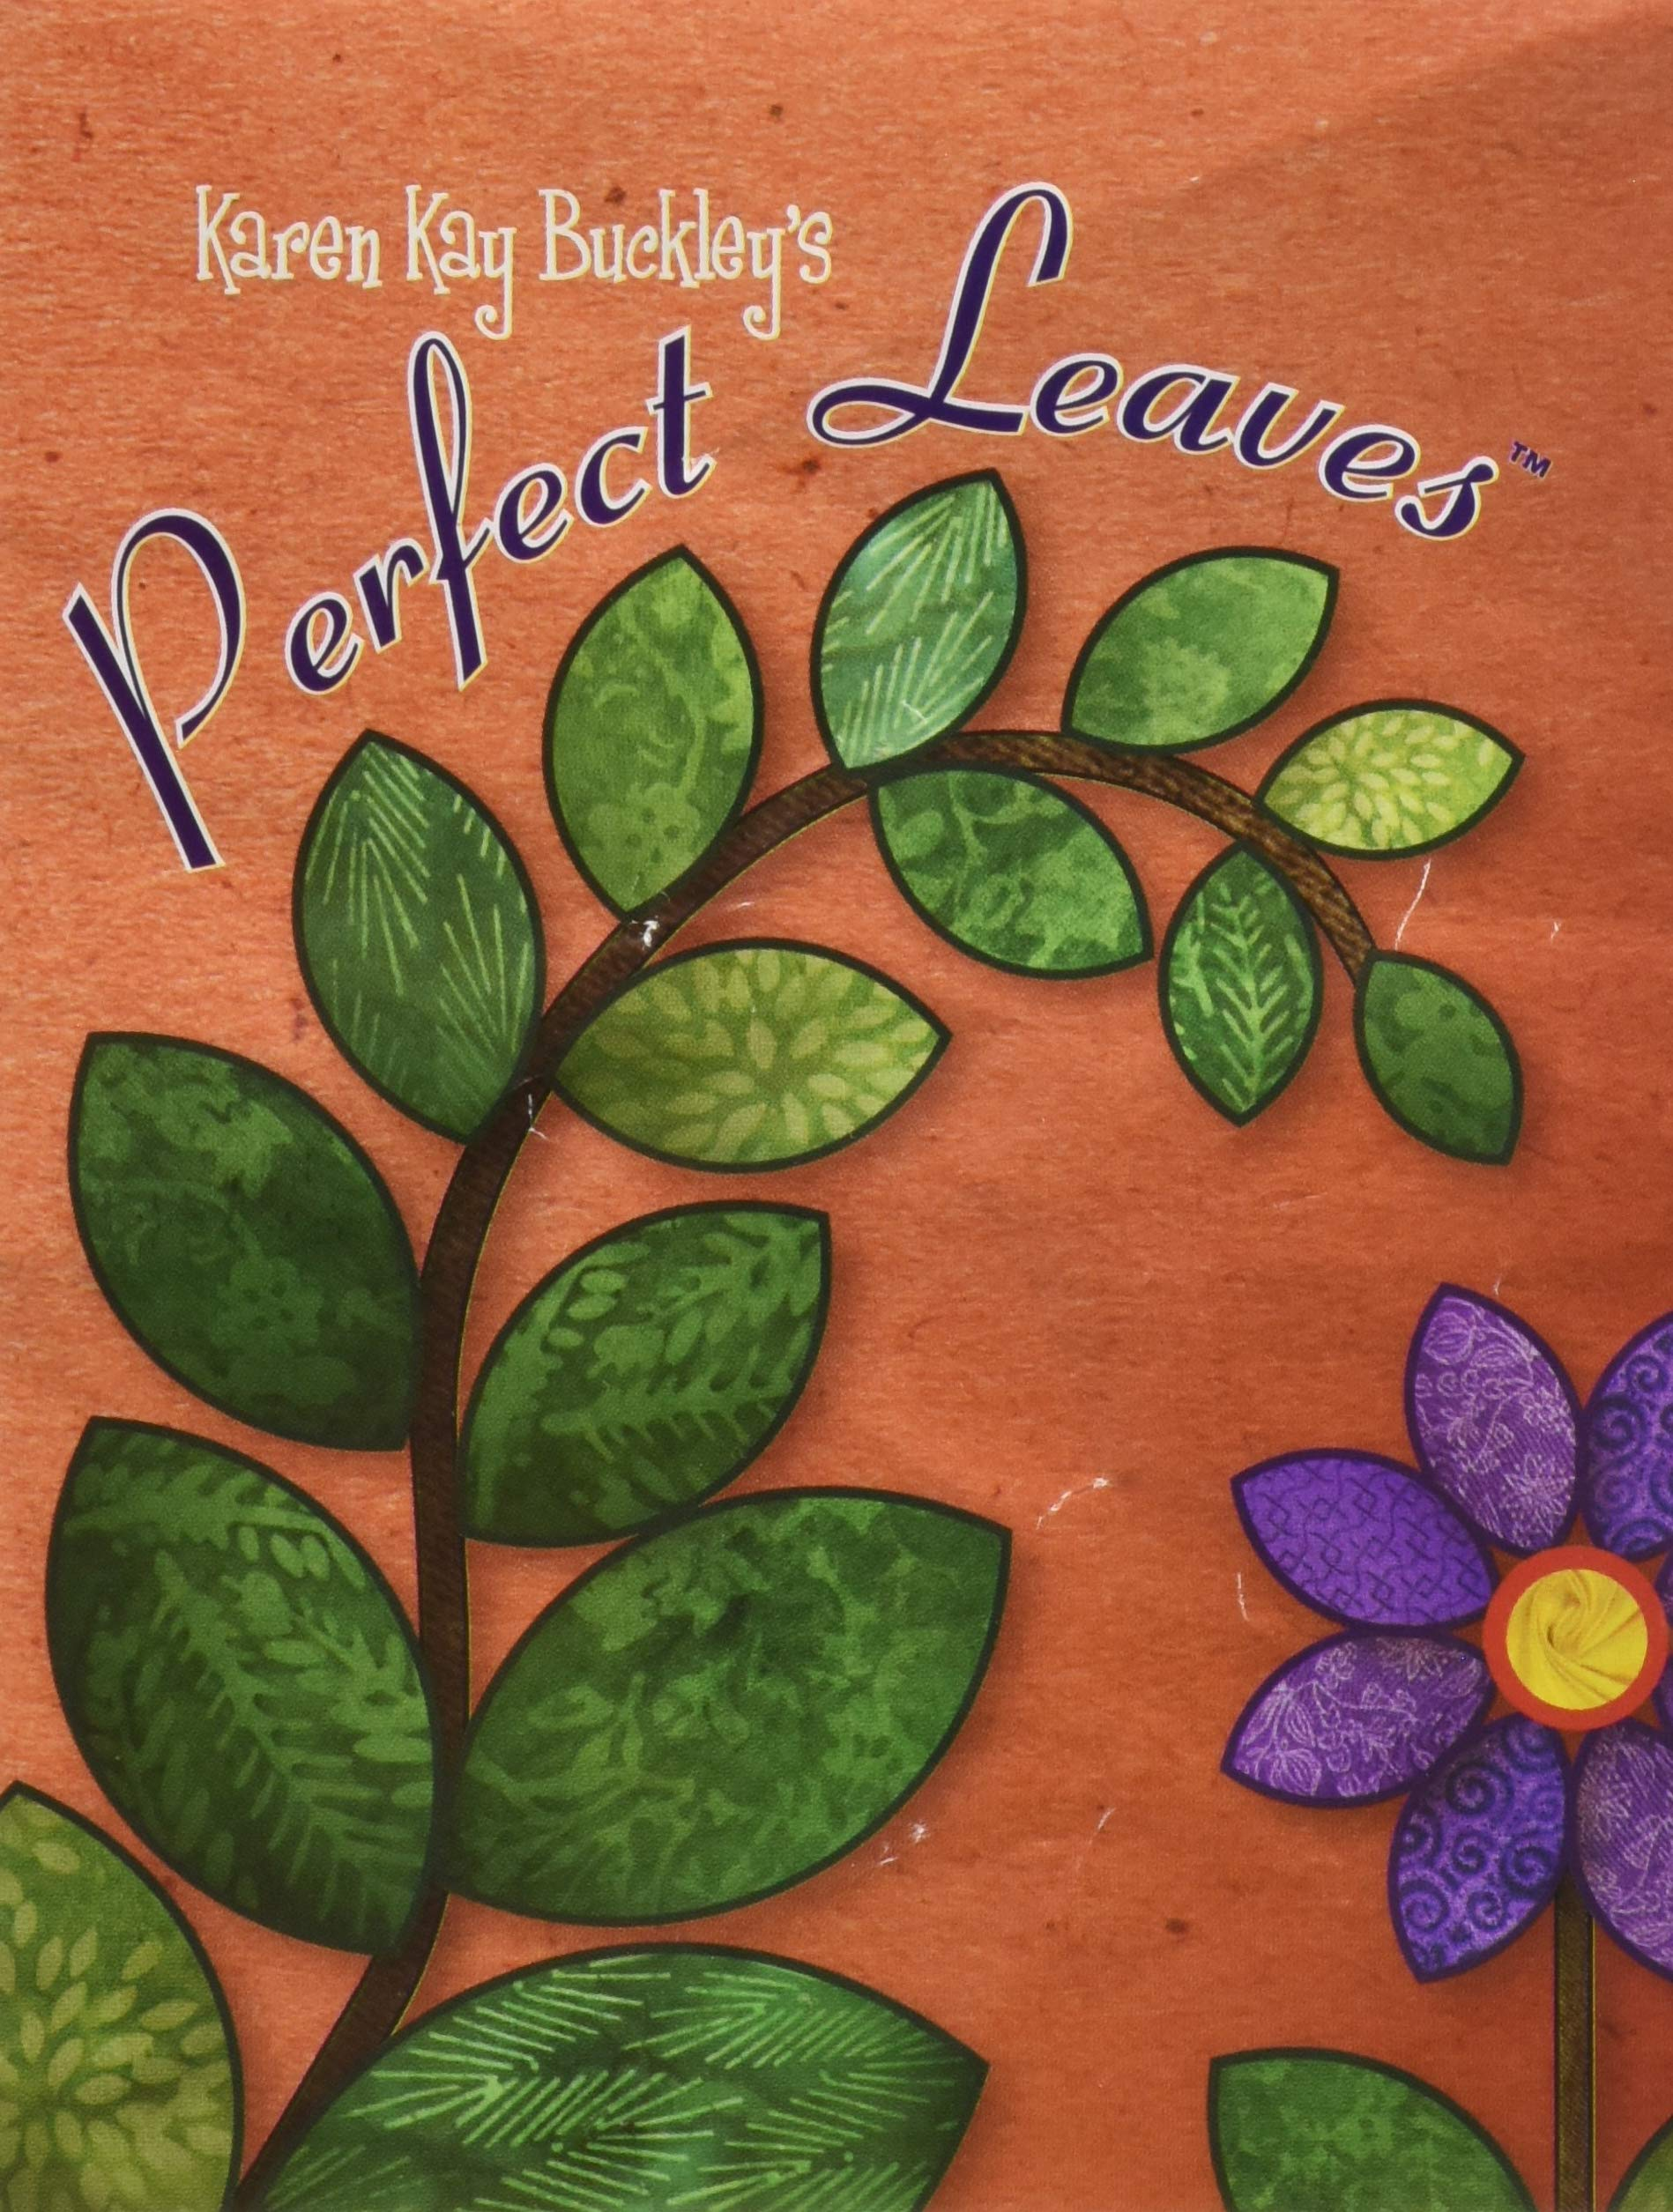 Perfect Leaves: Heat Resistant Plastic Templates in 15 Sizes by Karen Kay Buckley